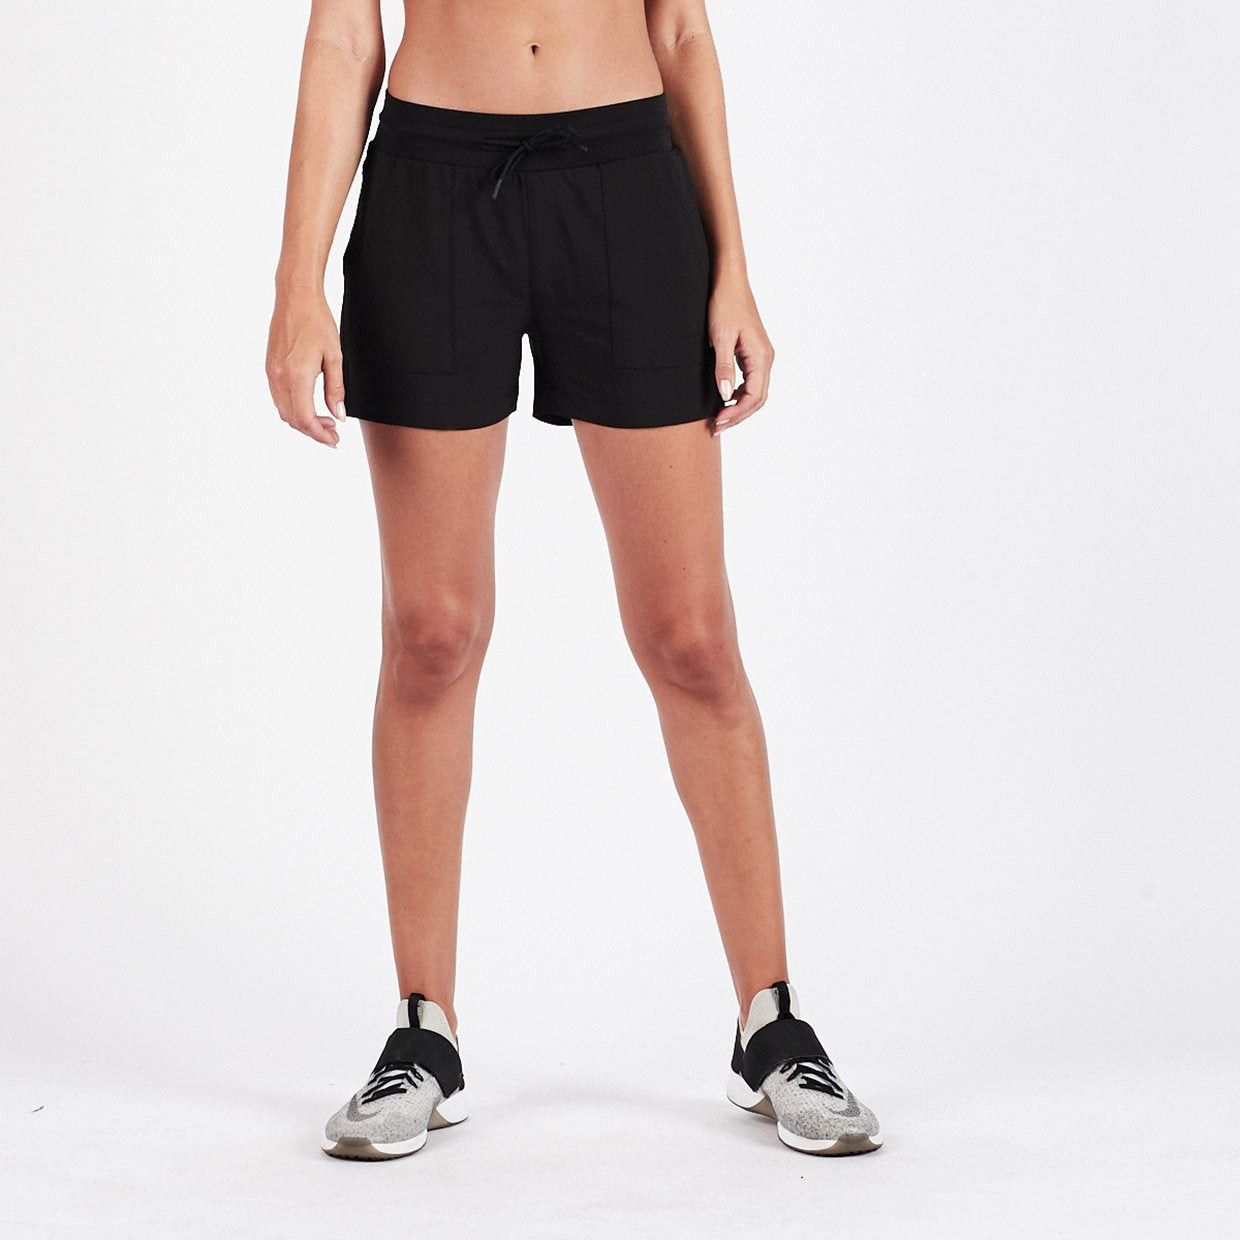 Summits Woven Climbing Short - Black - Black 1